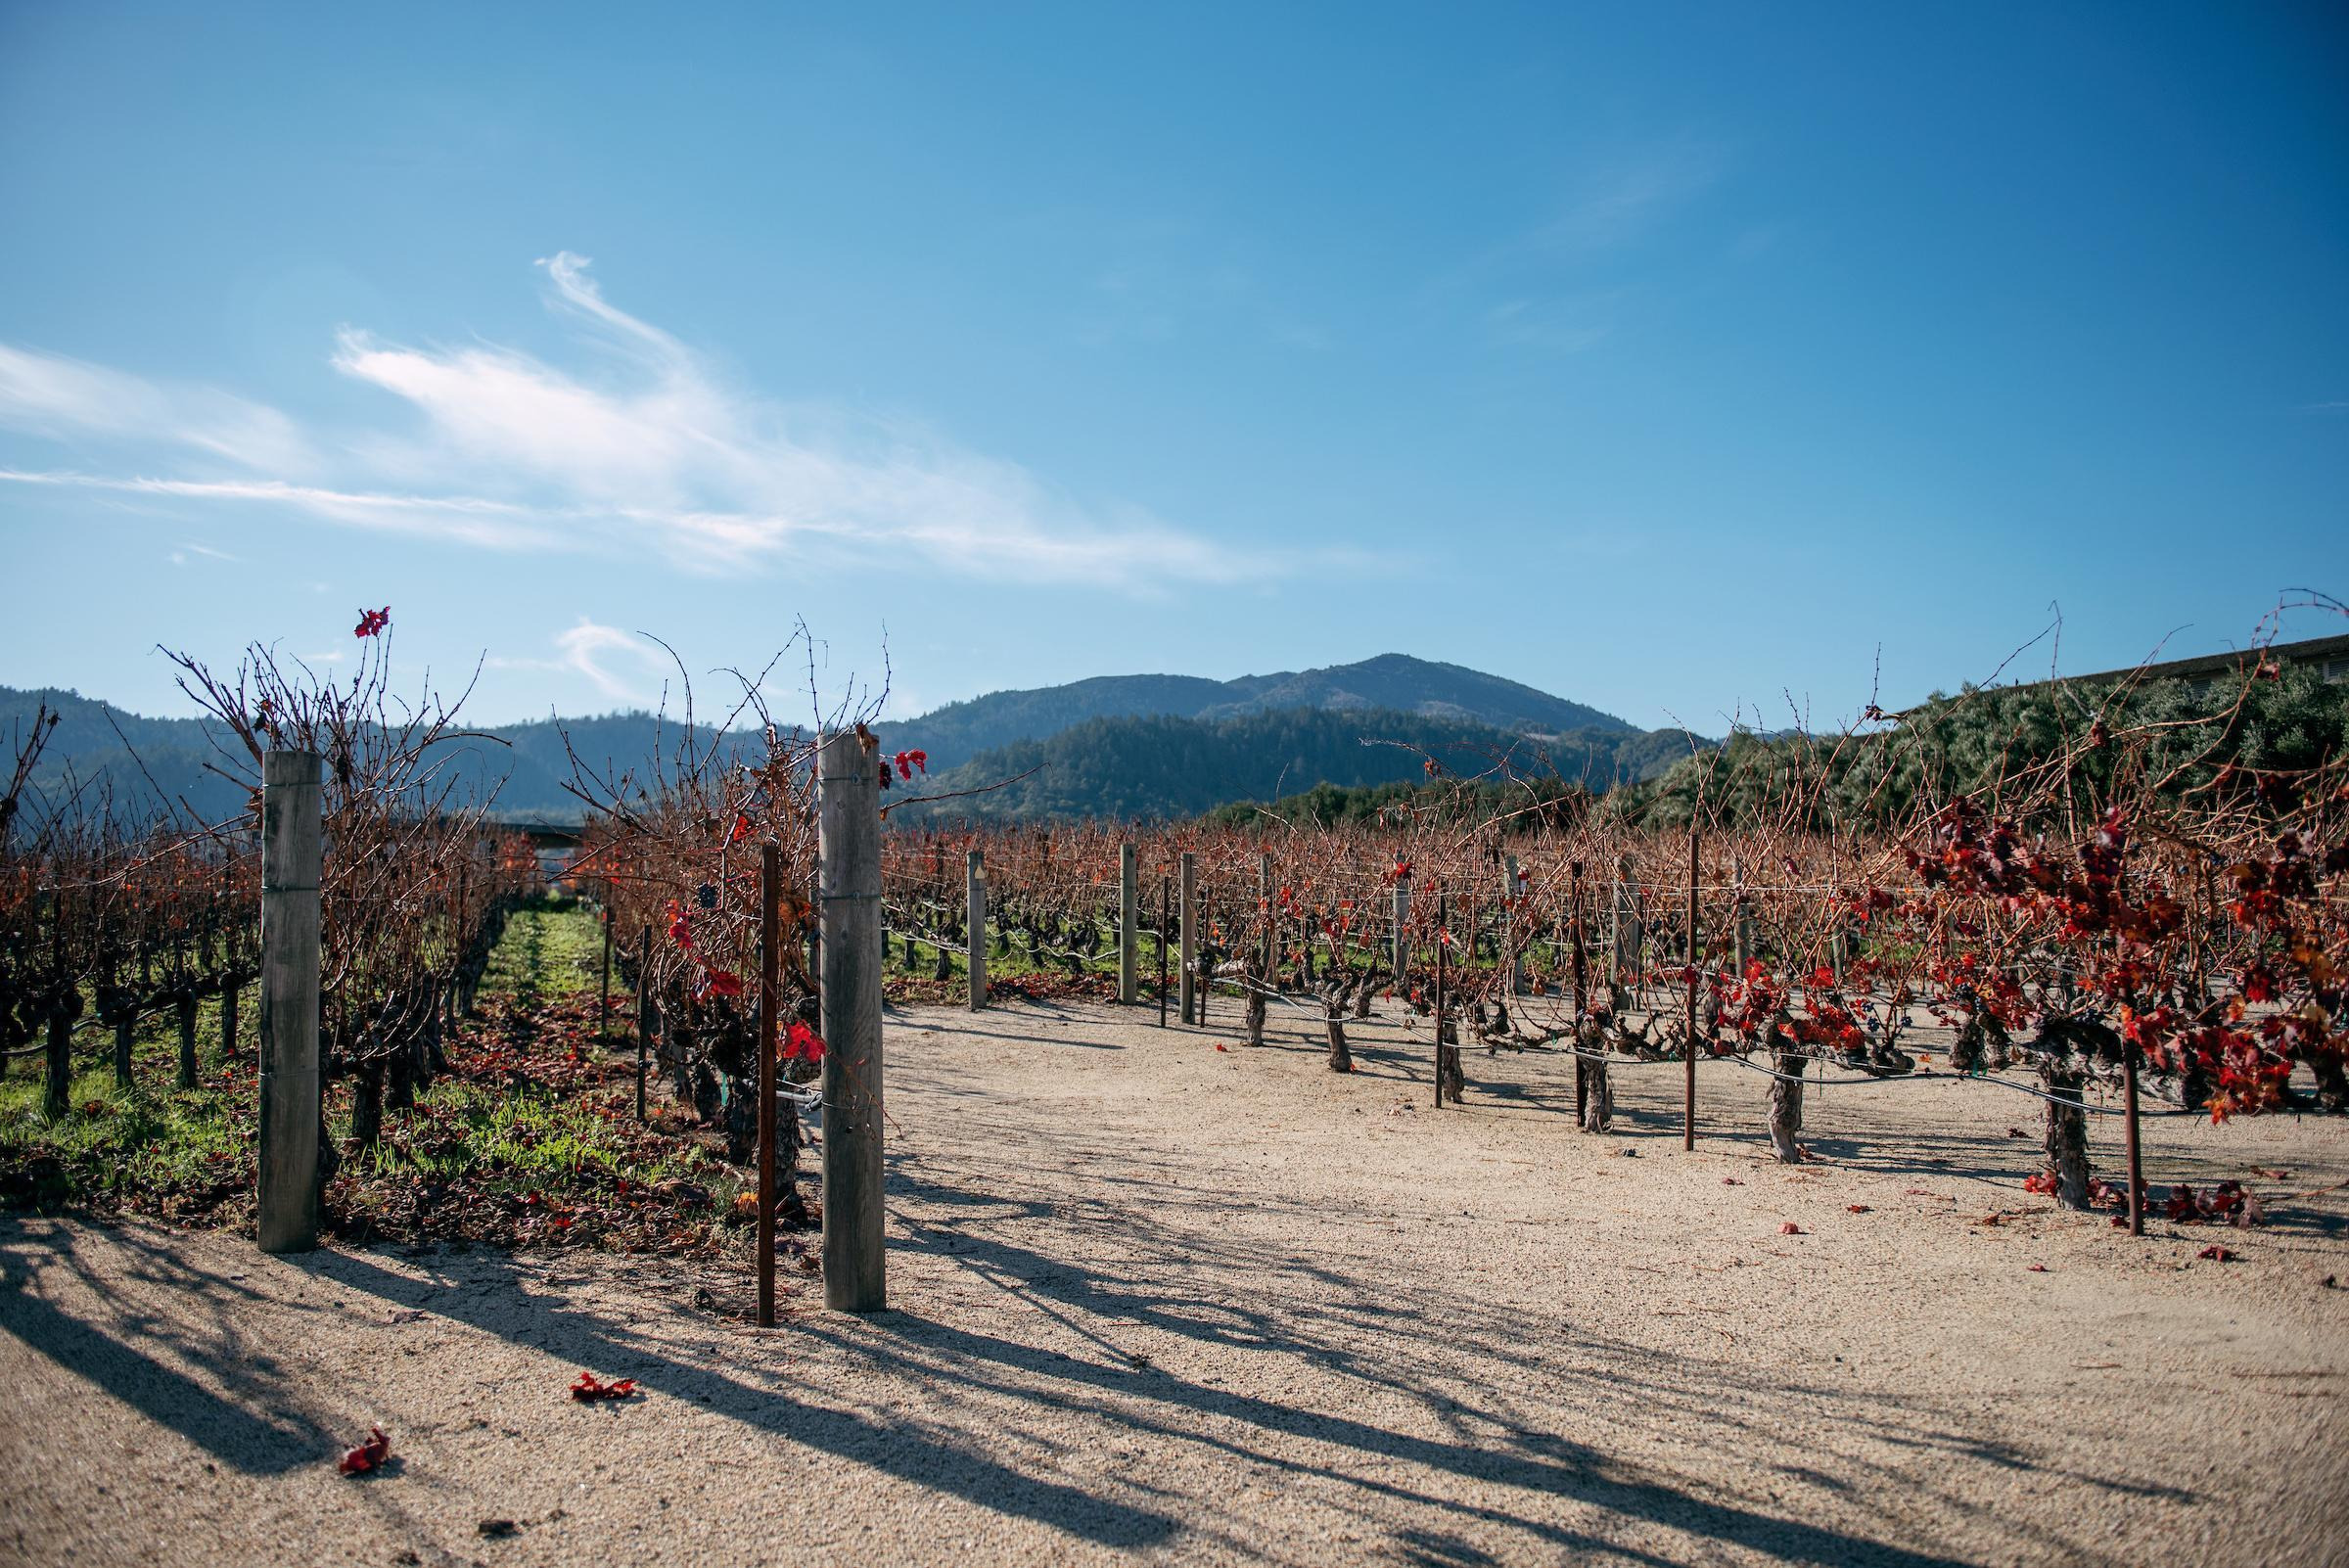 How to Spend 3 Days in Napa & Sonoma